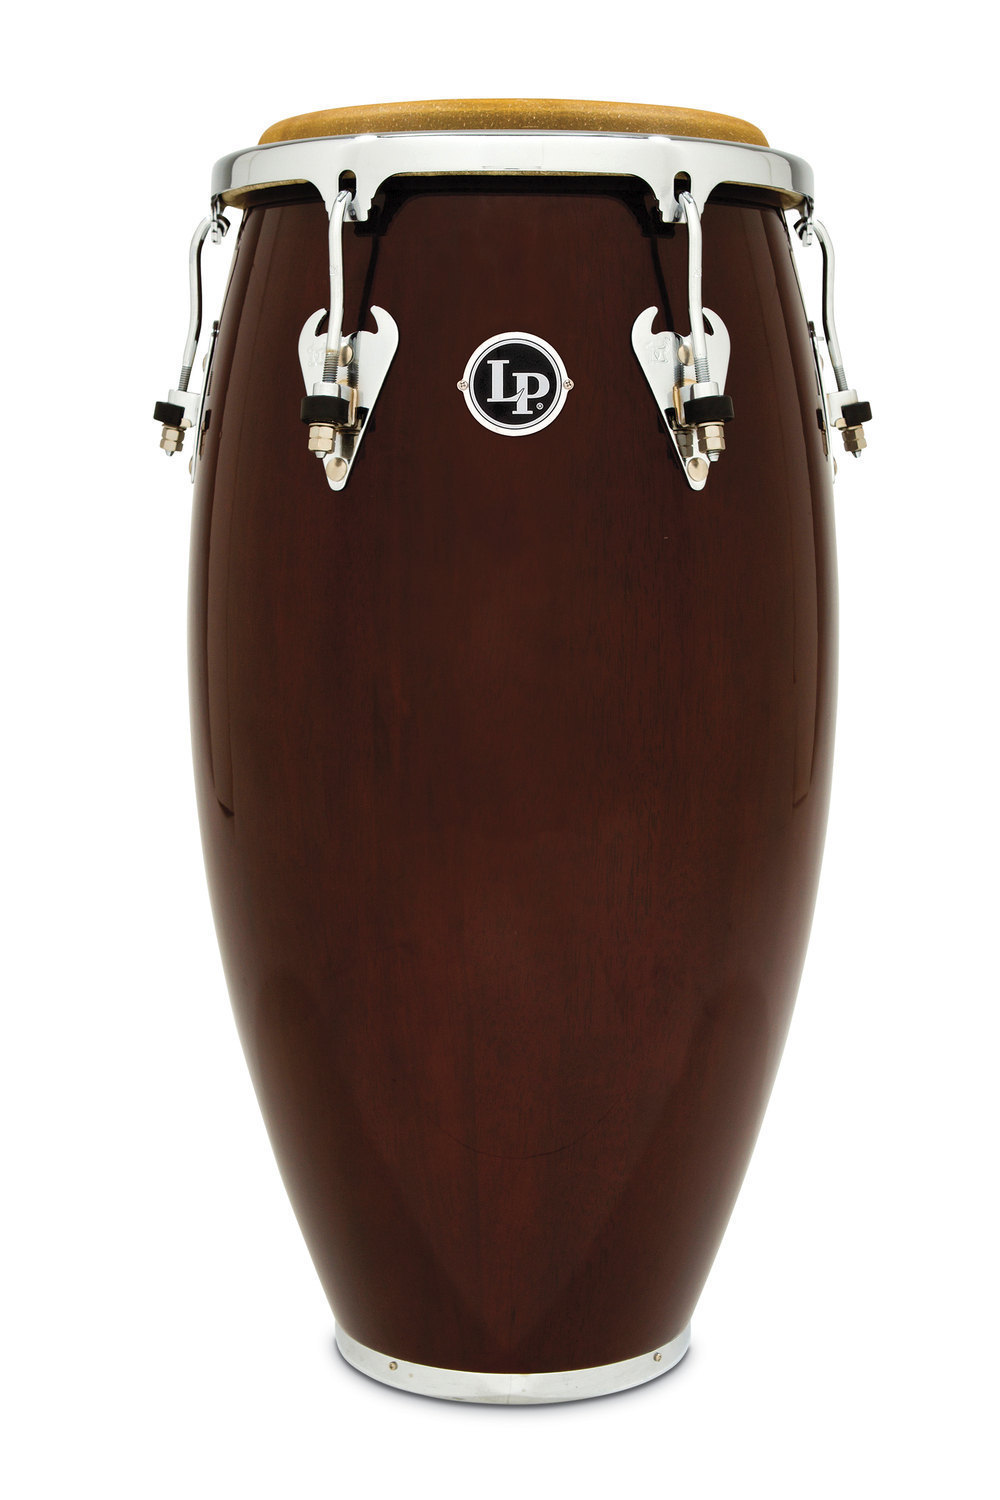 LP Matador Dark Wood Congas Tumba 12 1/2""